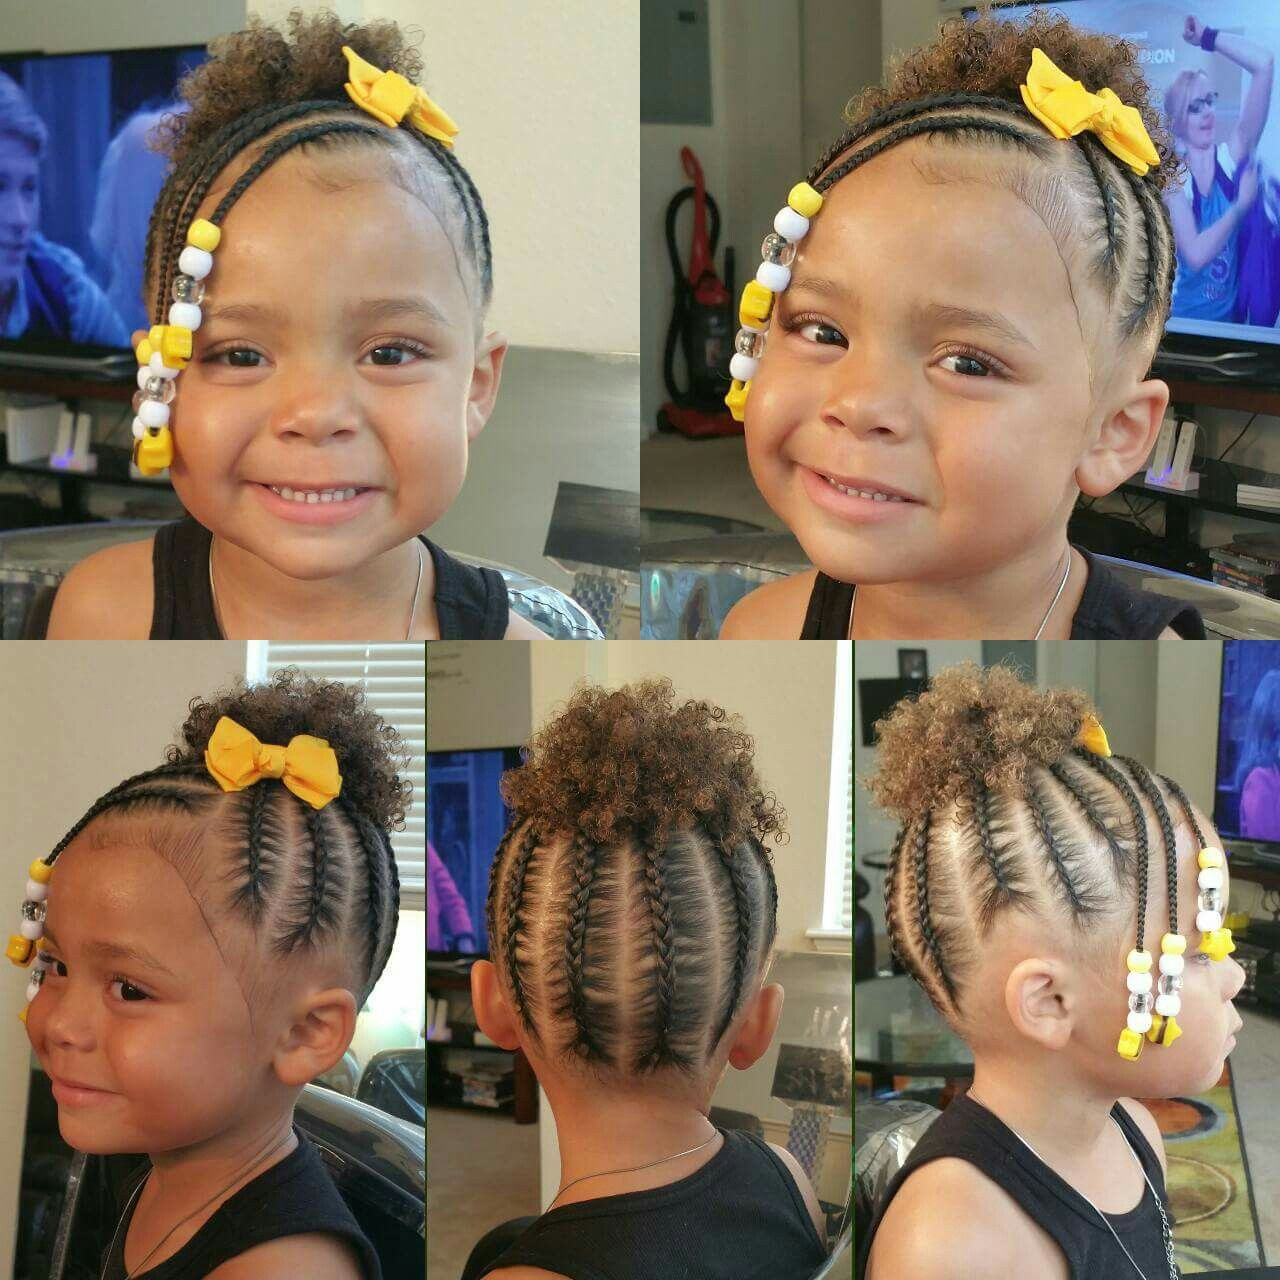 Pin By Samone Alexis On Gianna Hair Kids Hairstyles Girls Kids Hairstyles Little Girls Natural Hairstyles